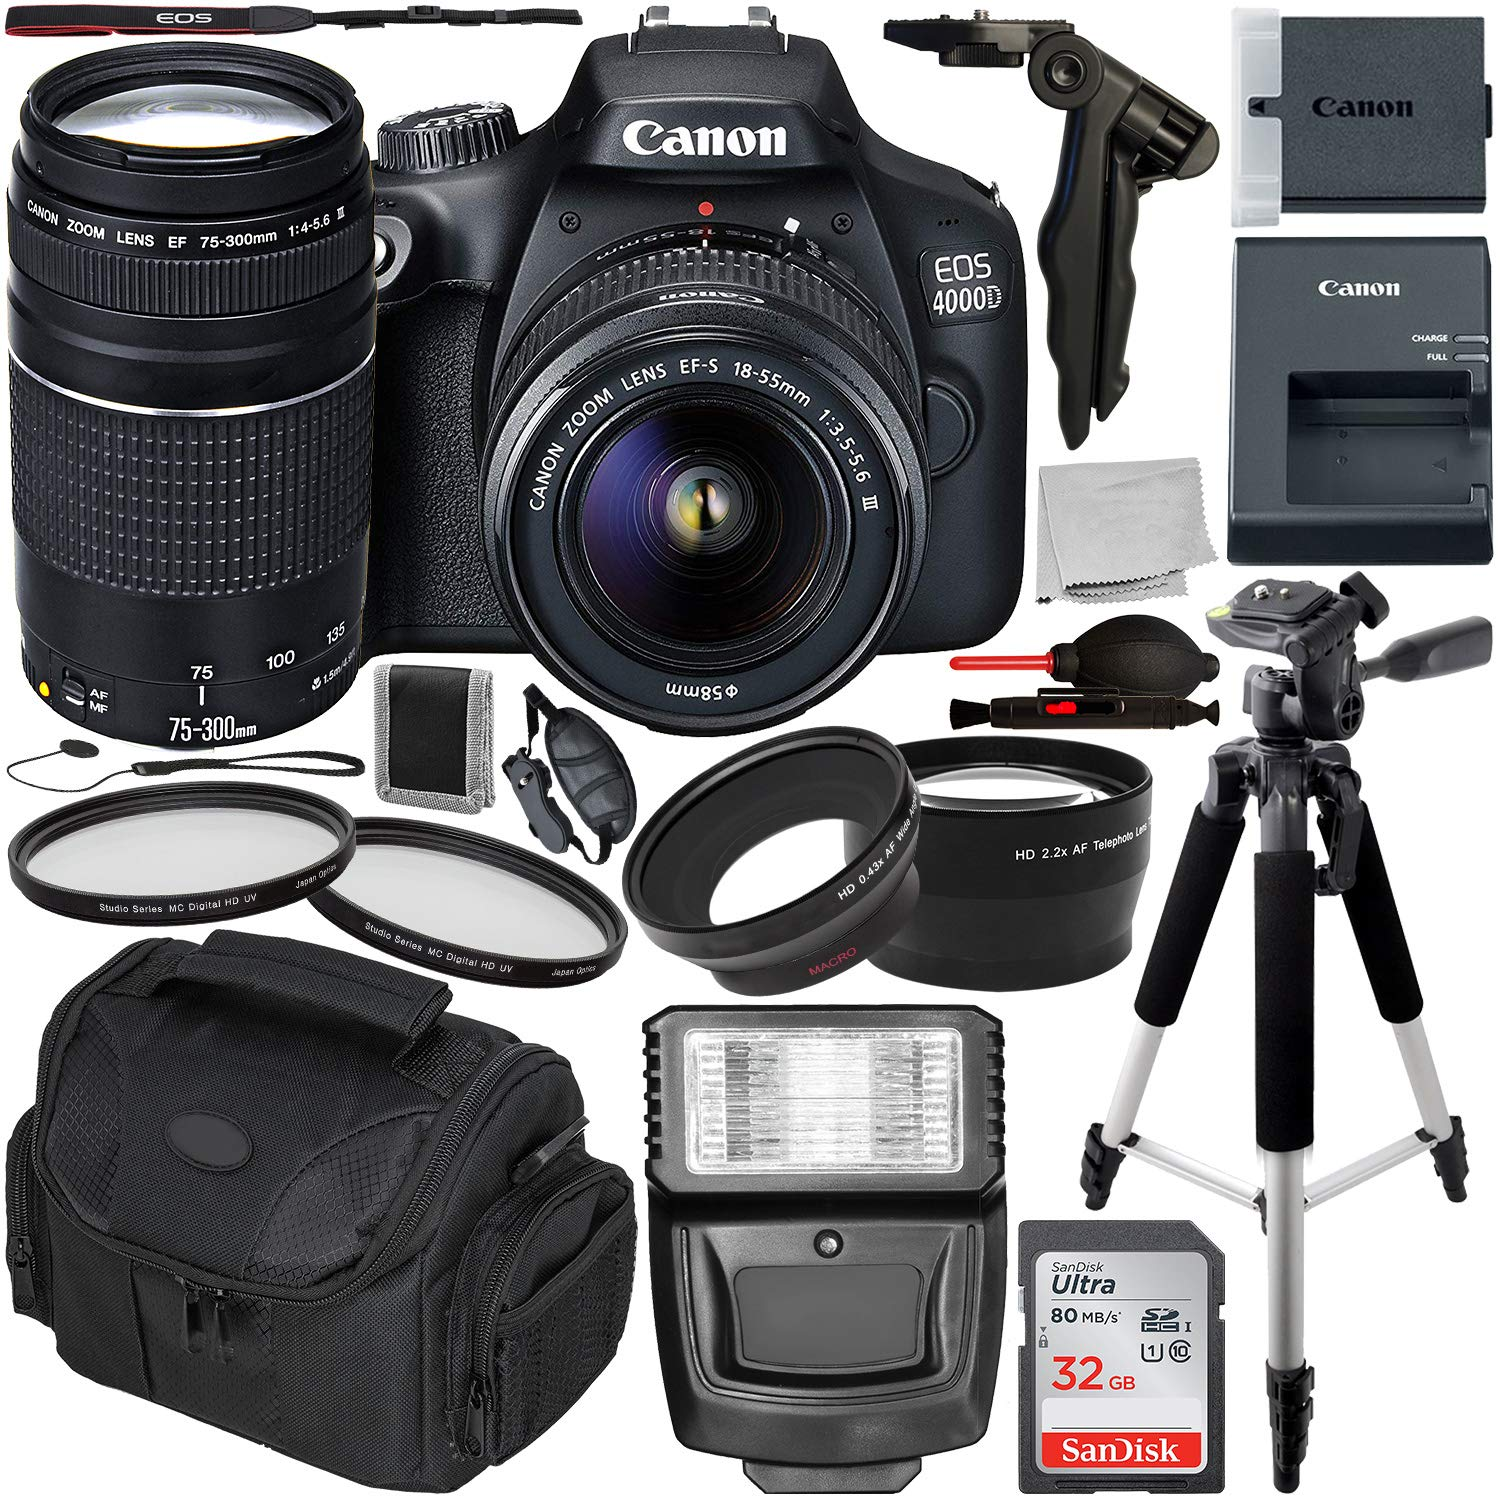 Canon EOS 4000D DSLR Camera with 18-55mm III & 75-300mm III Lens & Essential Accessory Bundle - Includes: SanDisk Ultra 32GB SDHC Memory Card + Wide Angle & Telephoto Lens Attachment + More